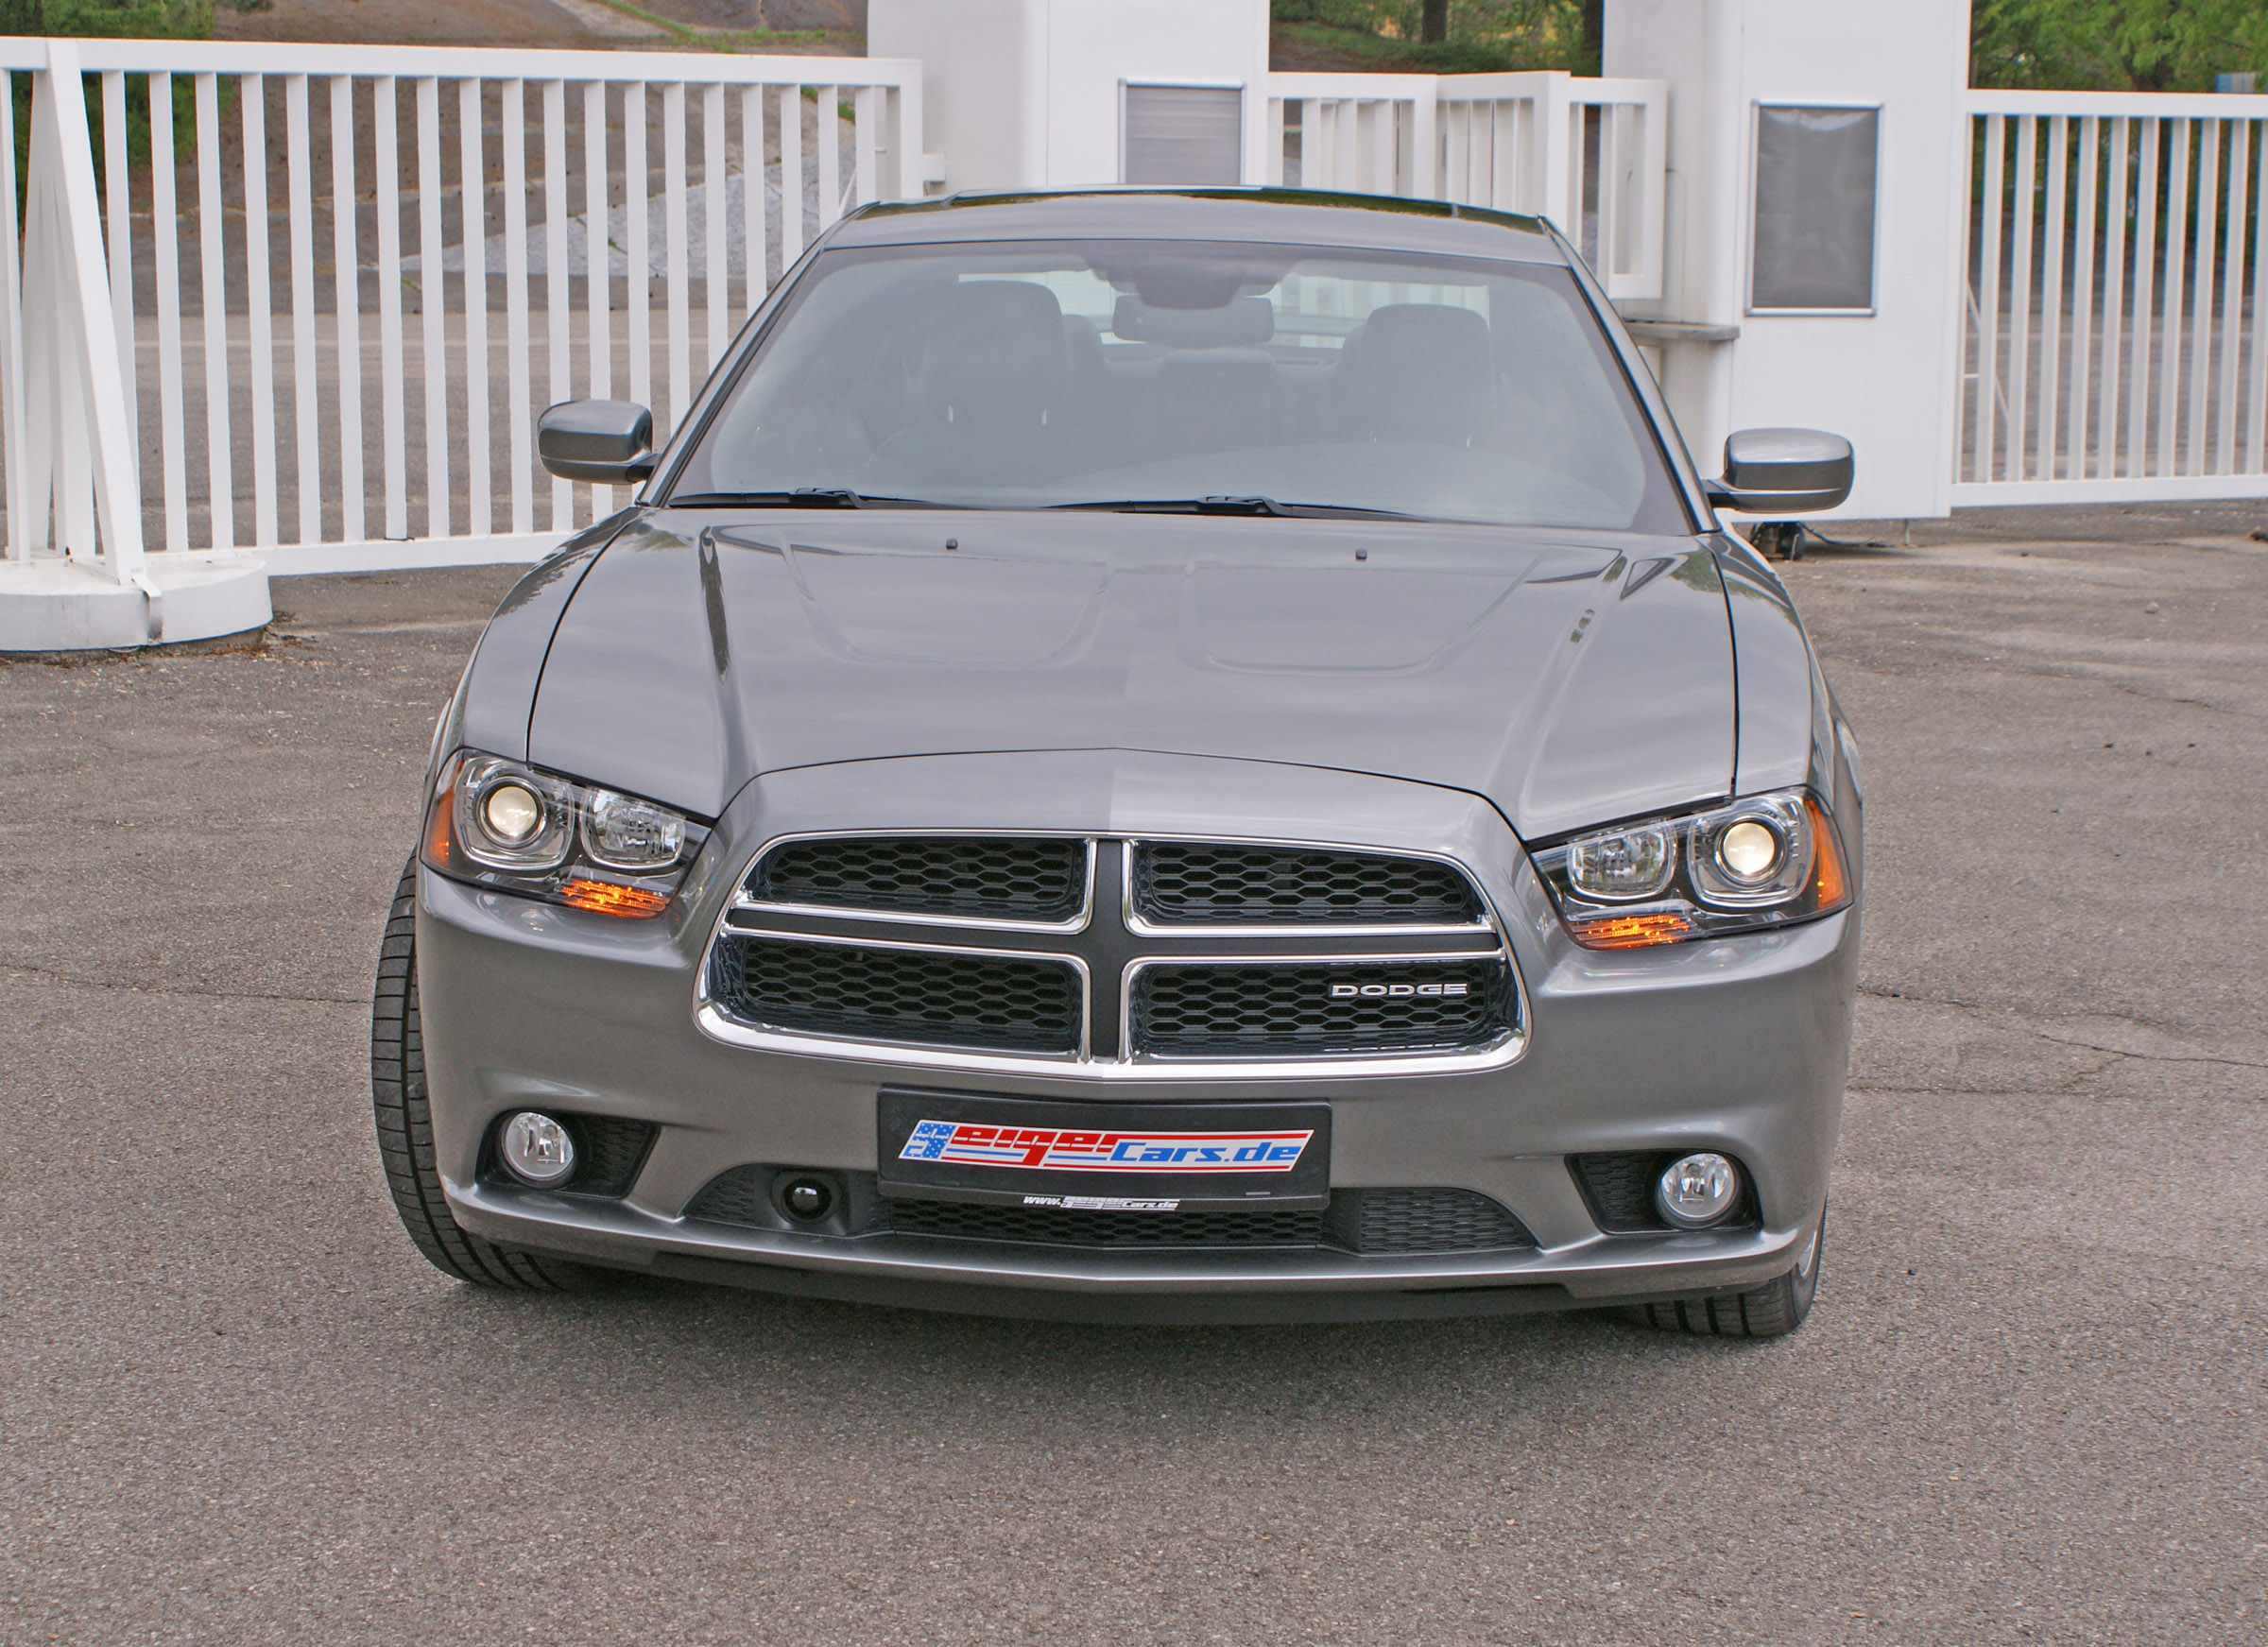 2011 Dodge Charger Rt for Sale – Drivins